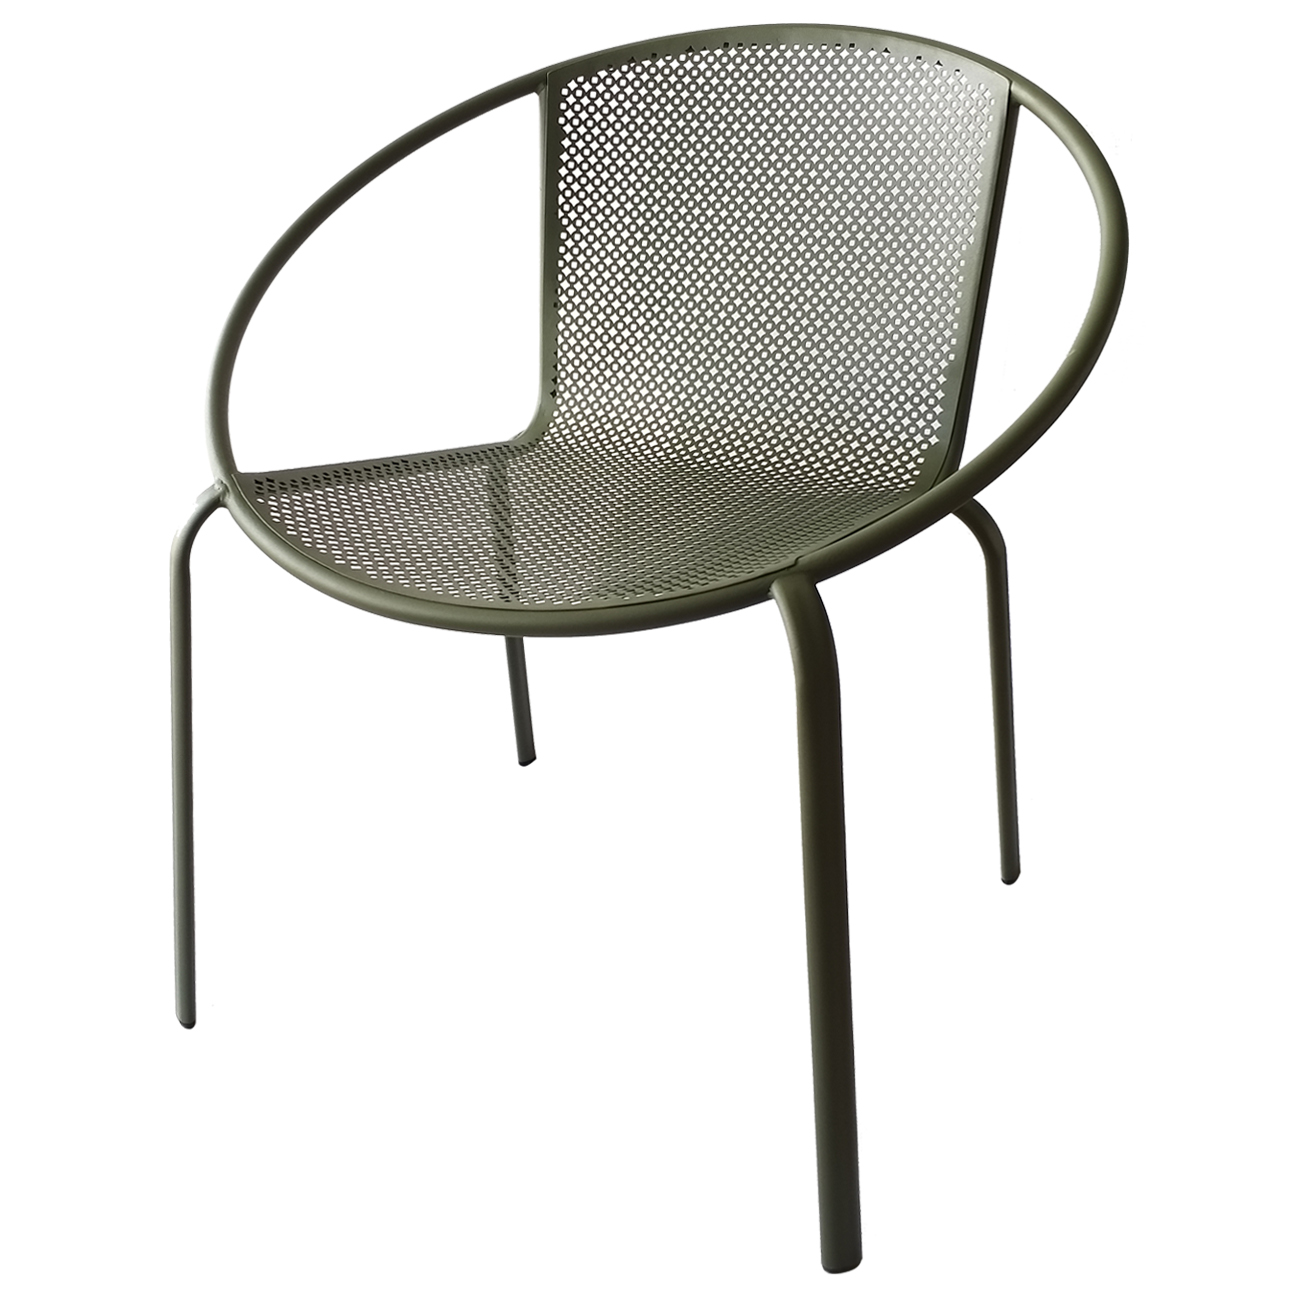 Fegan chair